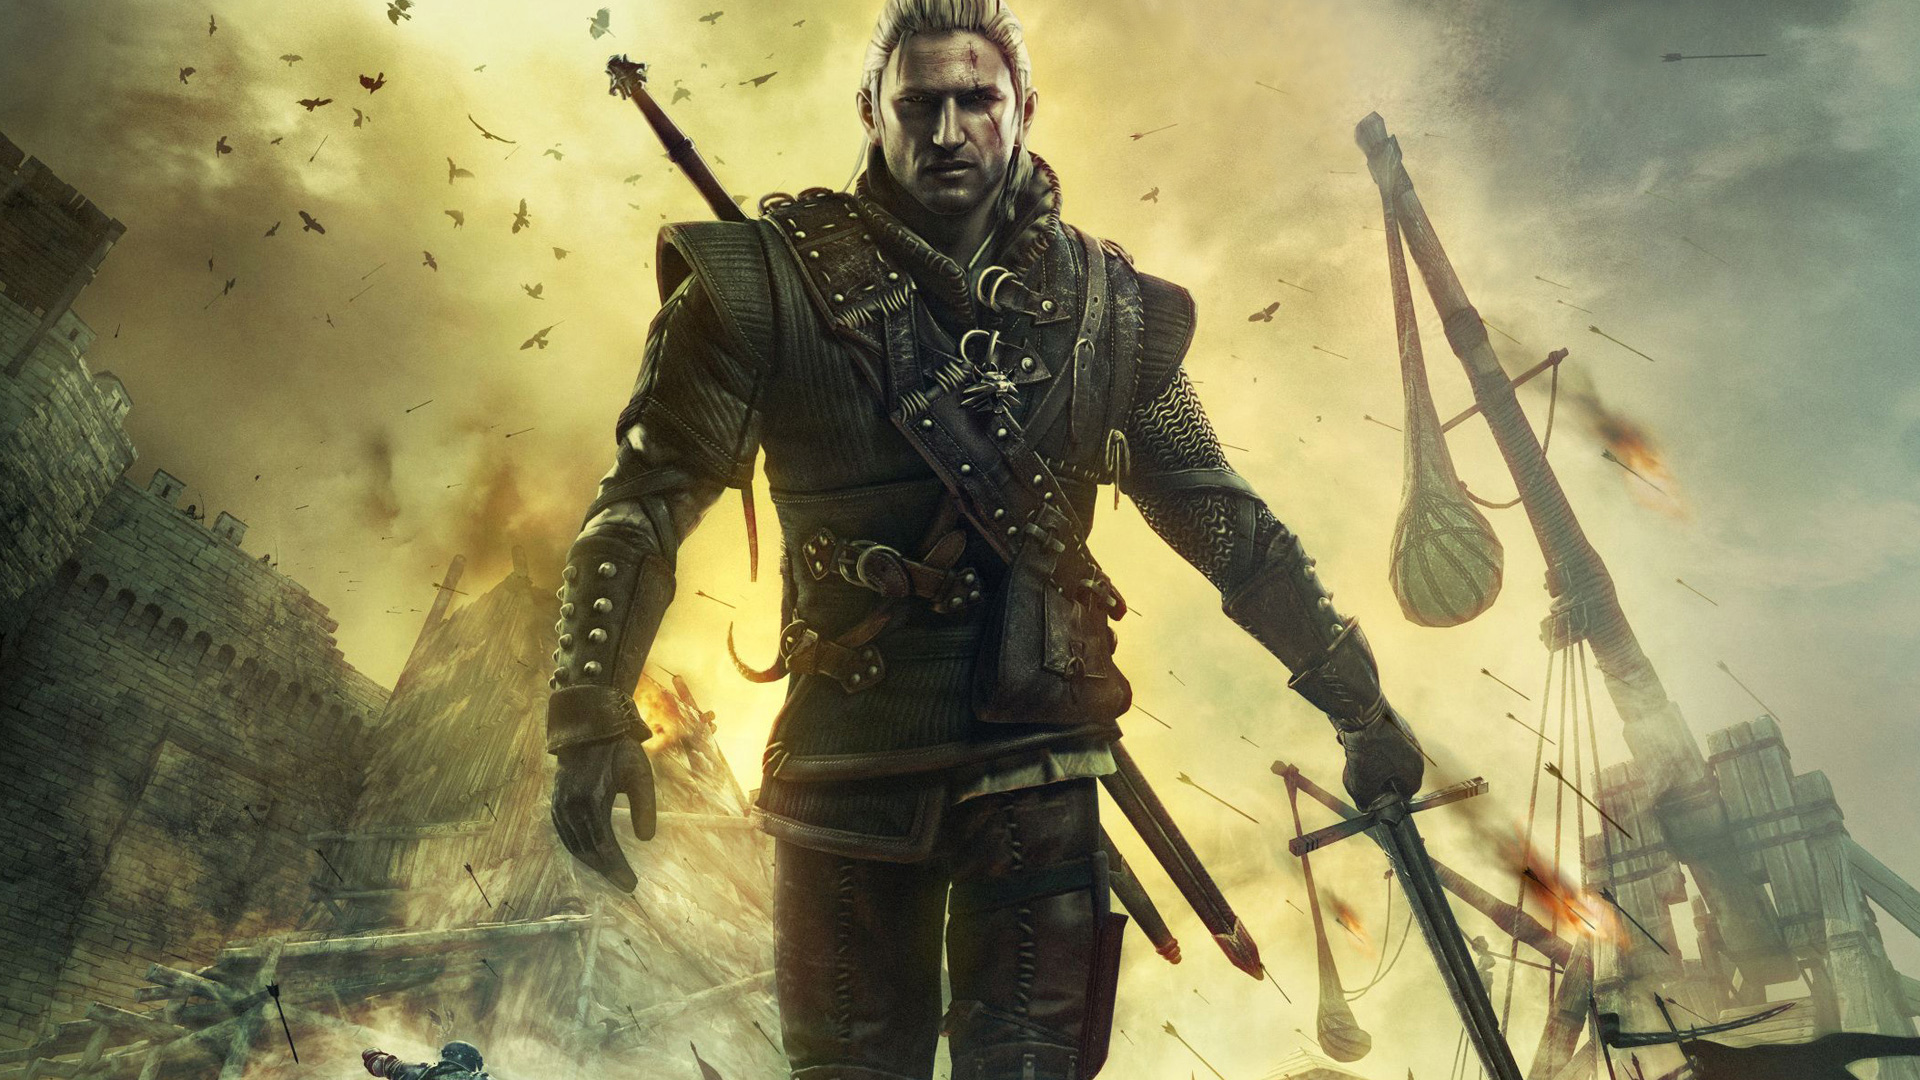 Free The Witcher Wallpaper in 1920x1080